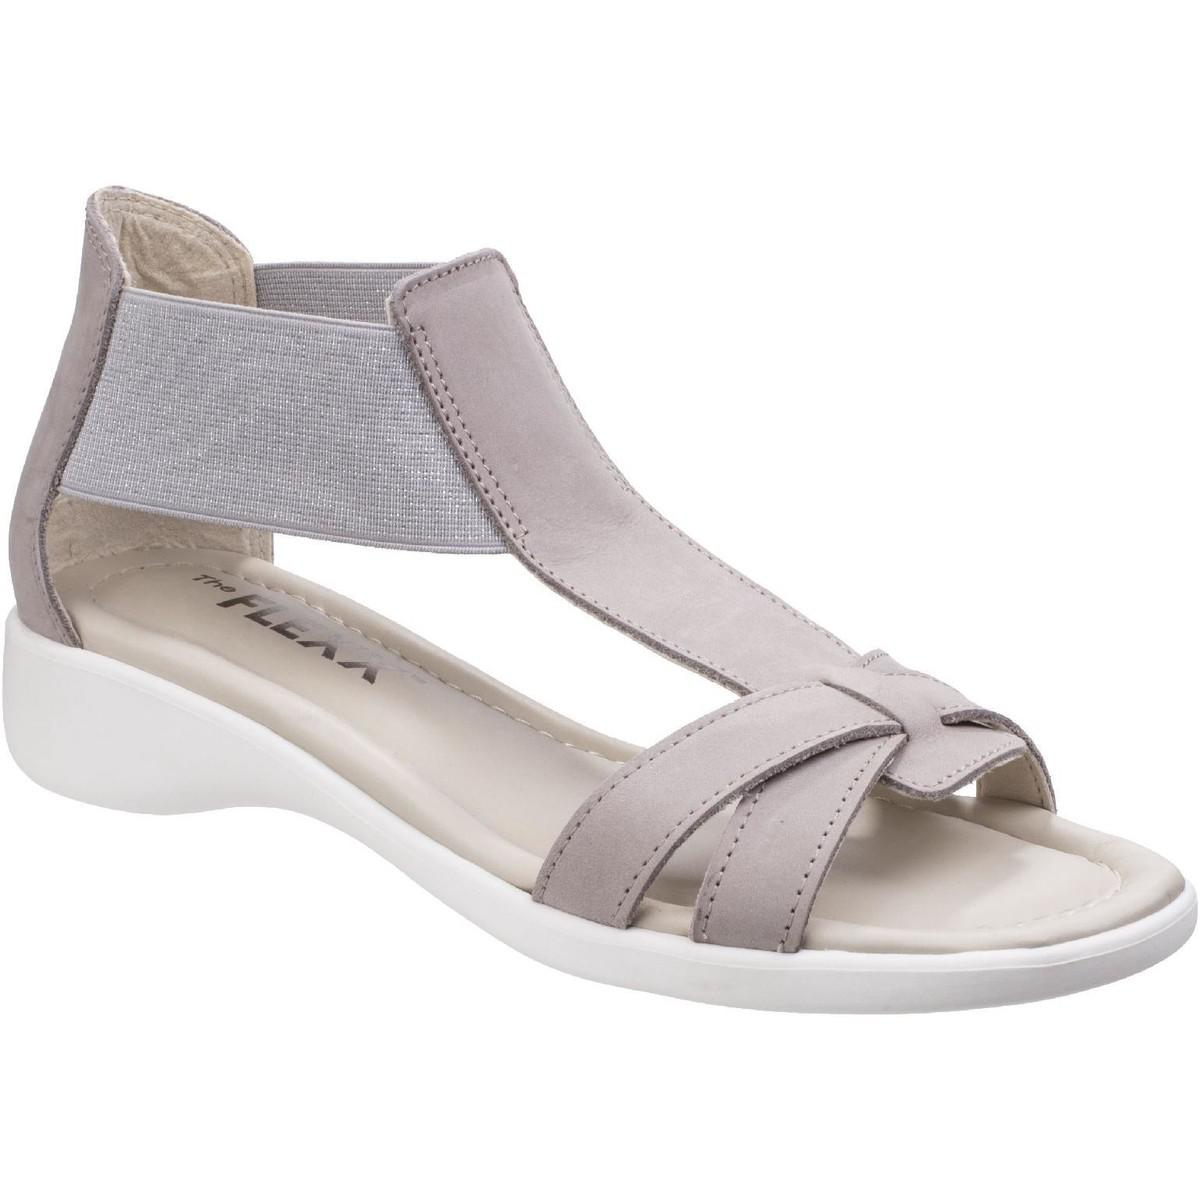 a7fc409b785 The Flexx Con Band Nubuck Women s Sandals In Other - Lyst